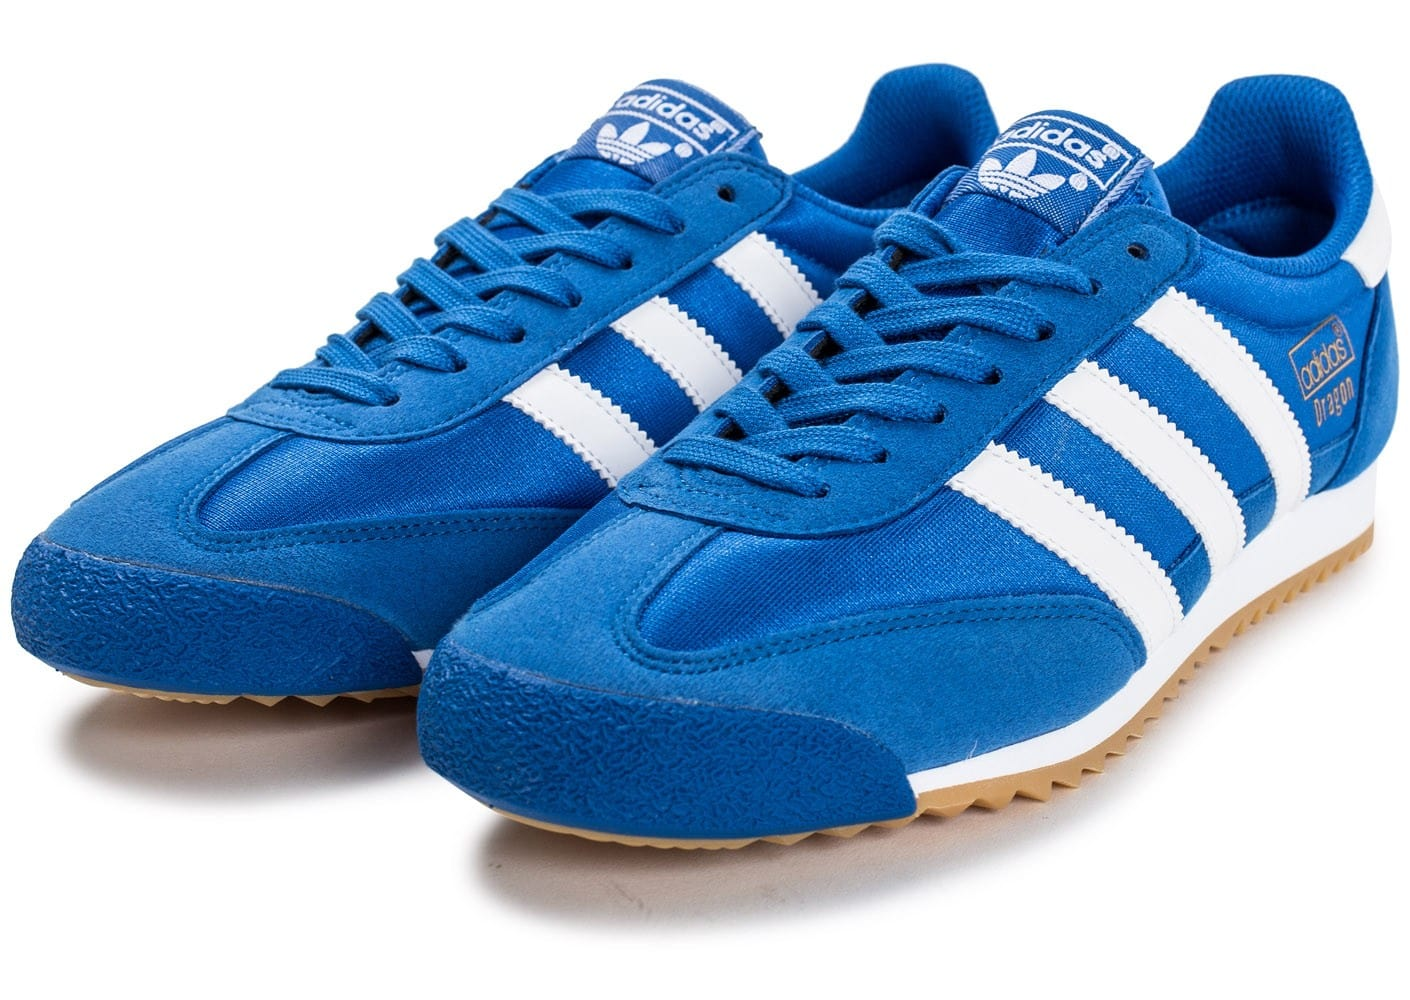 the best attitude 07e18 54a98 Dragon Homme Baskets Chausport Adidas Bleue Og Chaussures 6xwnRHqd